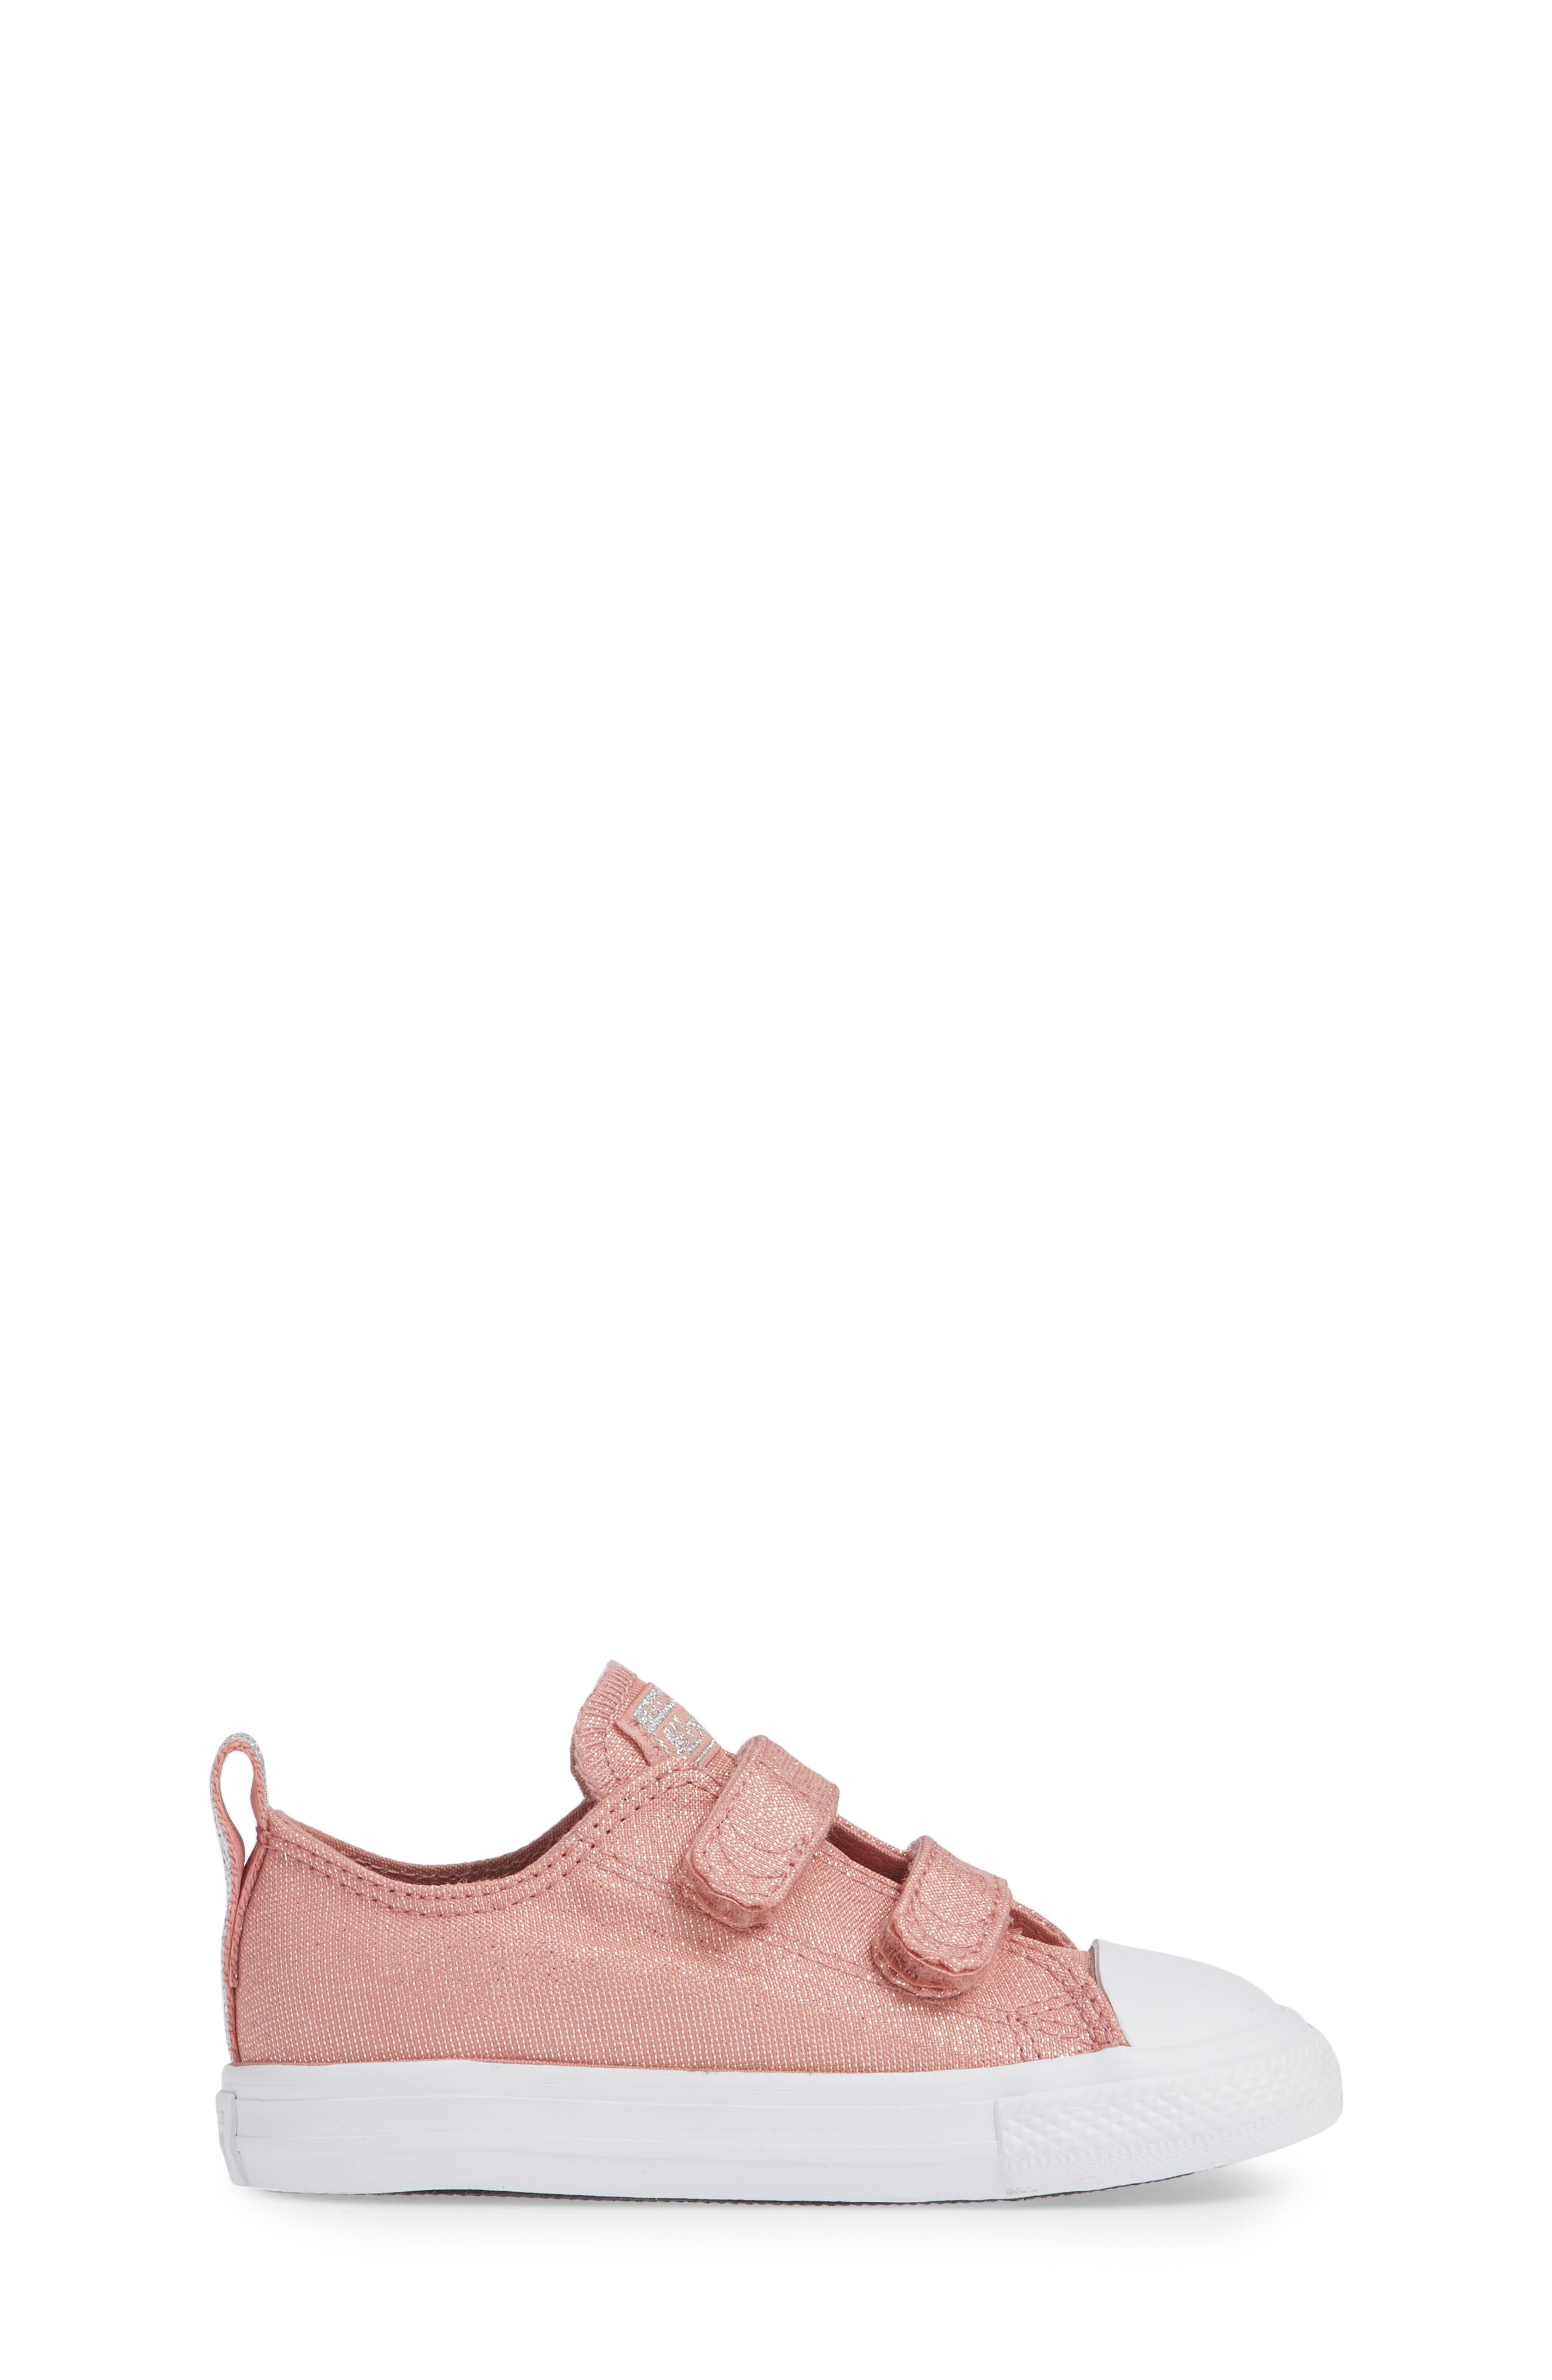 All Star<sup>®</sup> Fairy Dust Sneaker,                             Alternate thumbnail 3, color,                             RUST PINK